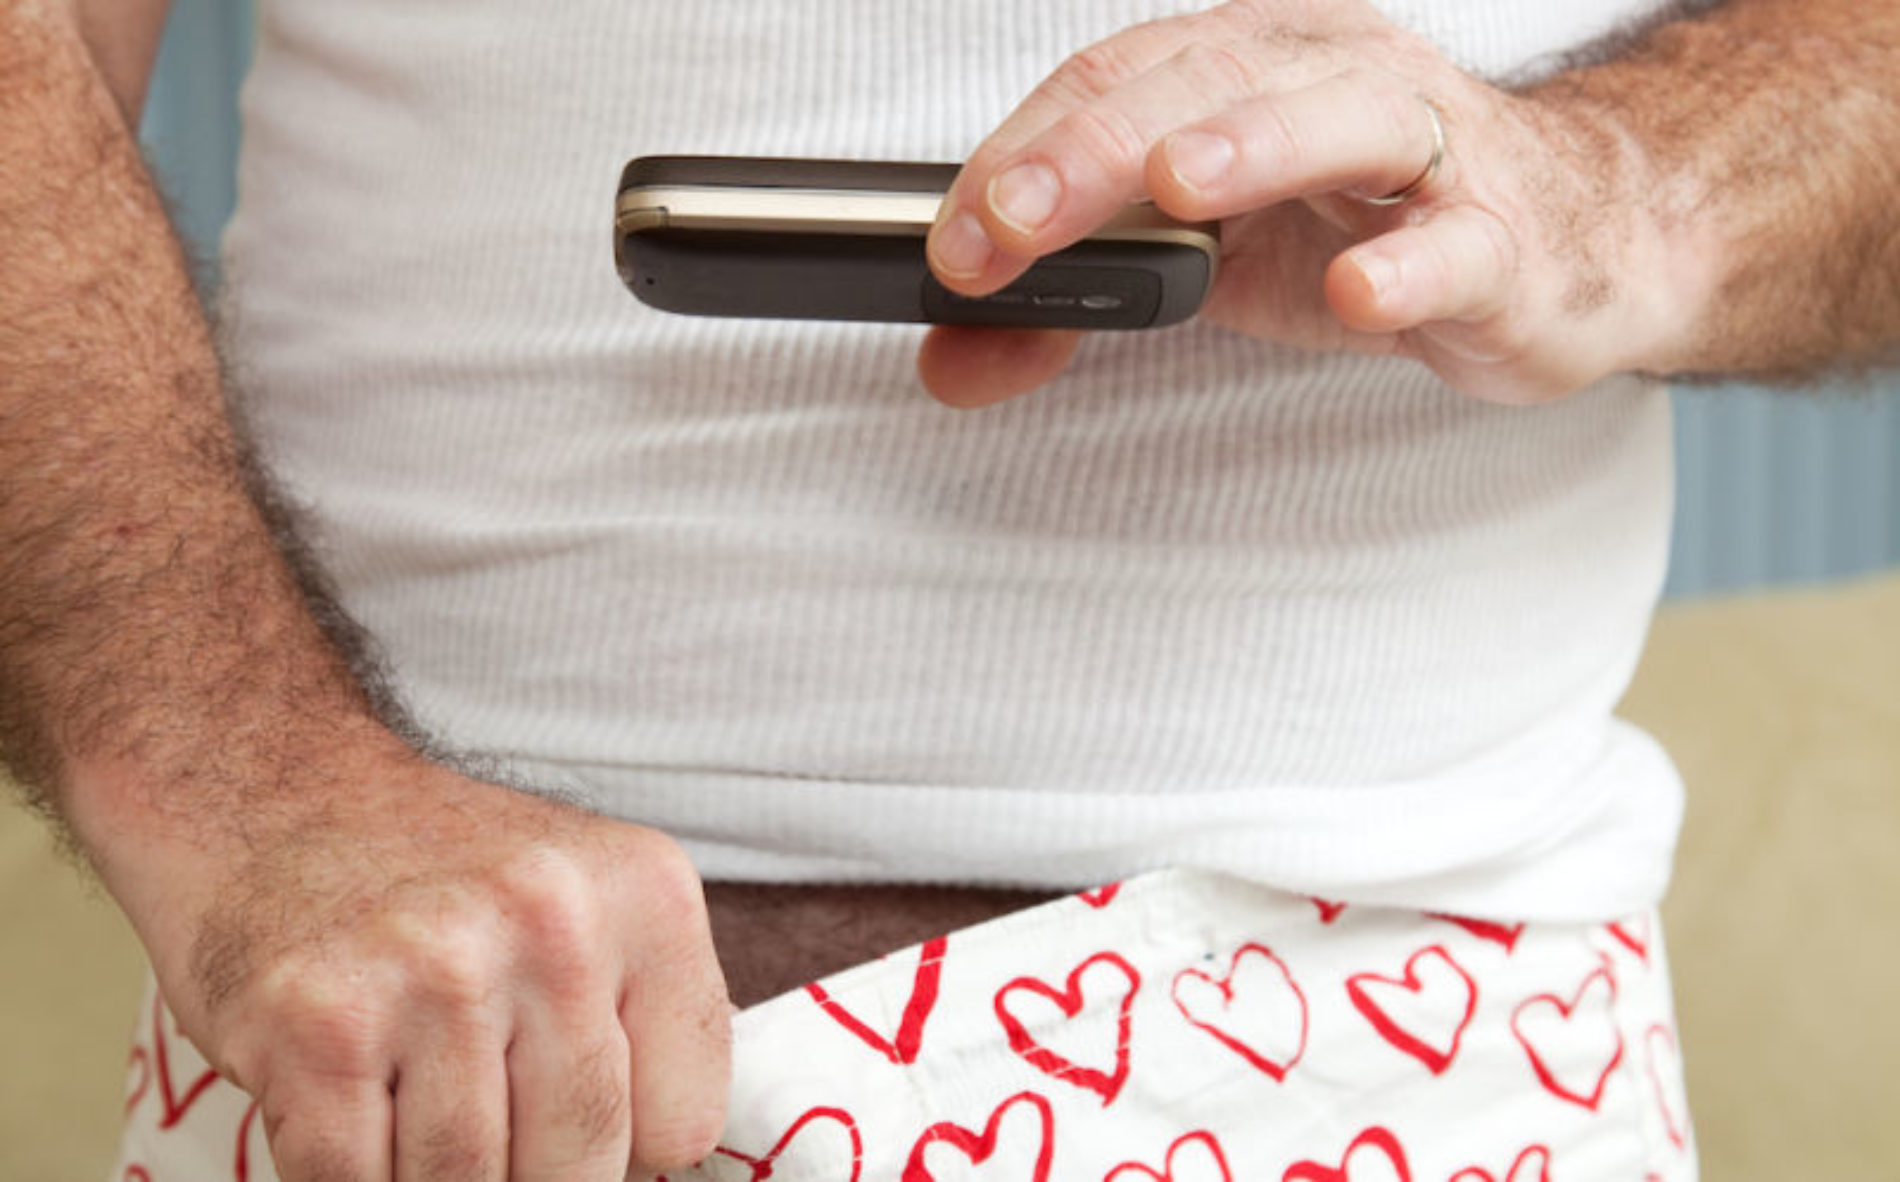 Men reveal why they send dick pics on dating apps